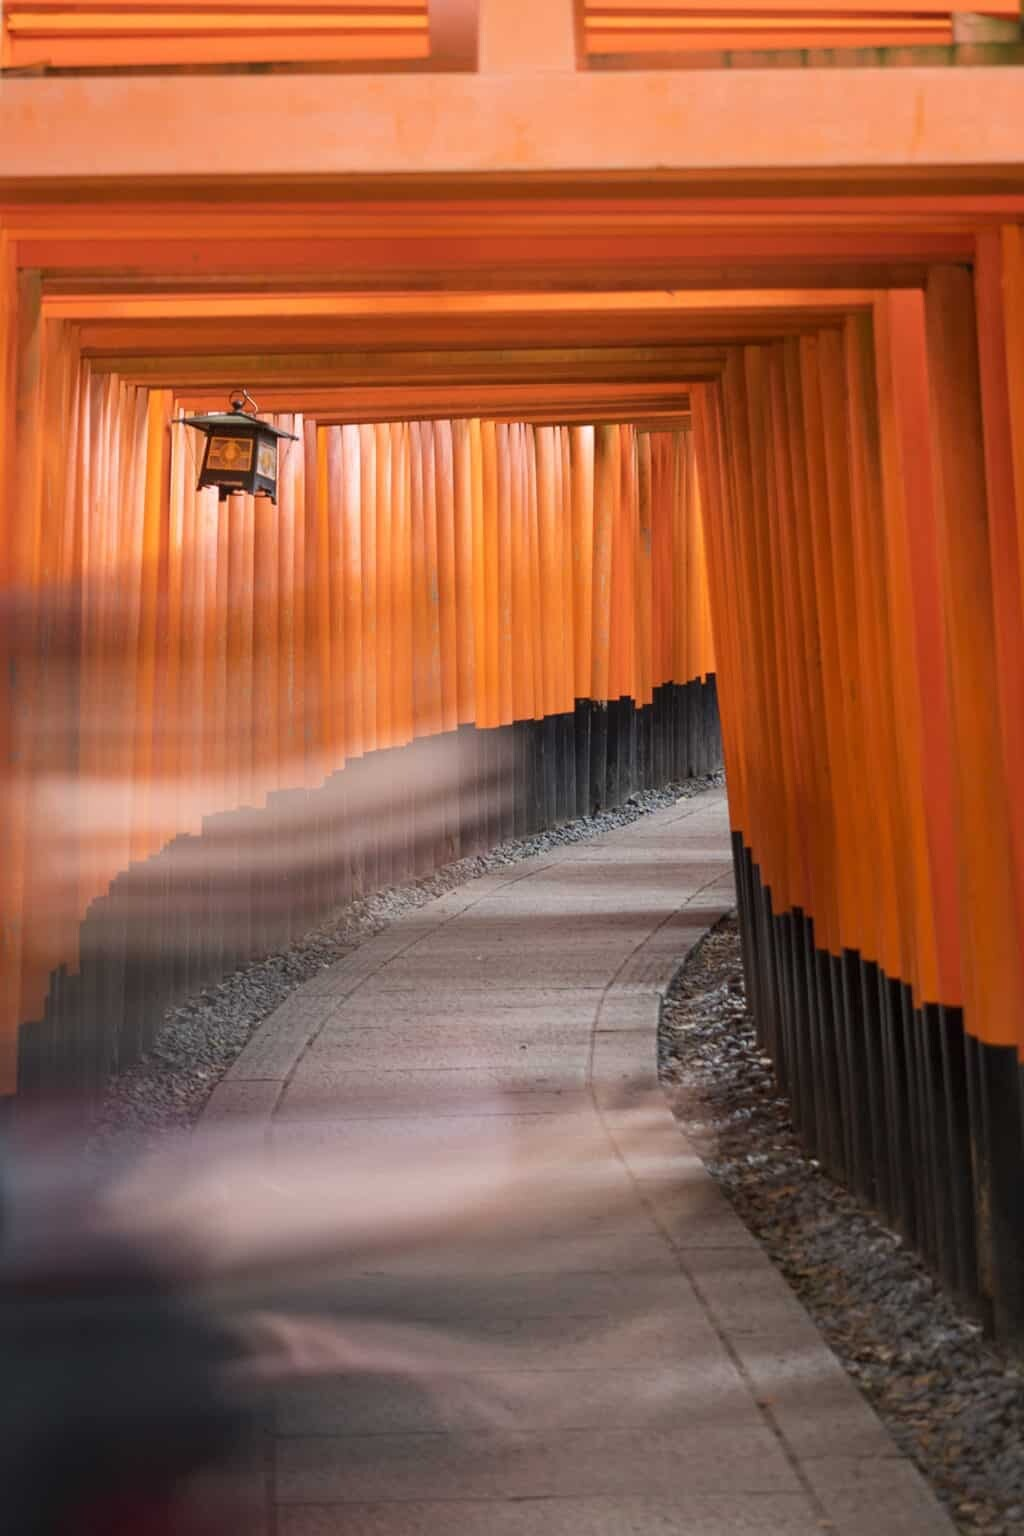 Kyoto photography locations and travel guide to Kyoto by The Wandering Lens